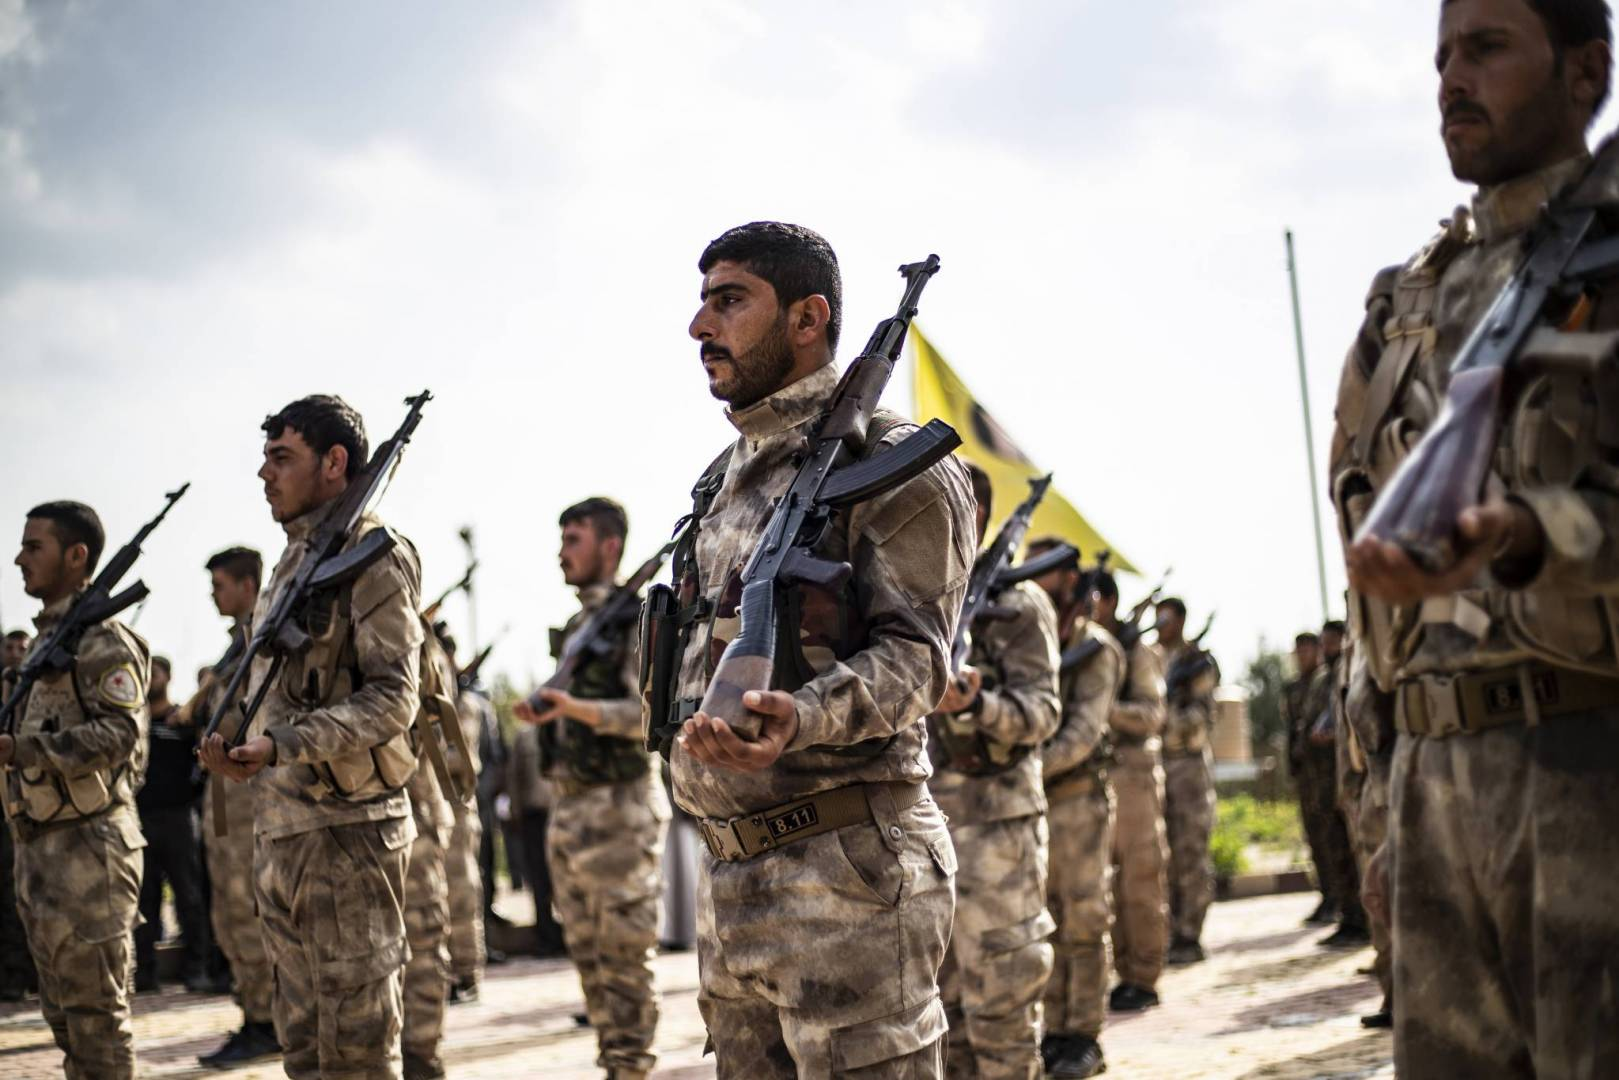 Fighters of the Syrian Democratic Forces (SDF) during a funeral procession of a fighter killed in Deir ez-Zor – April 2019 (AFP)